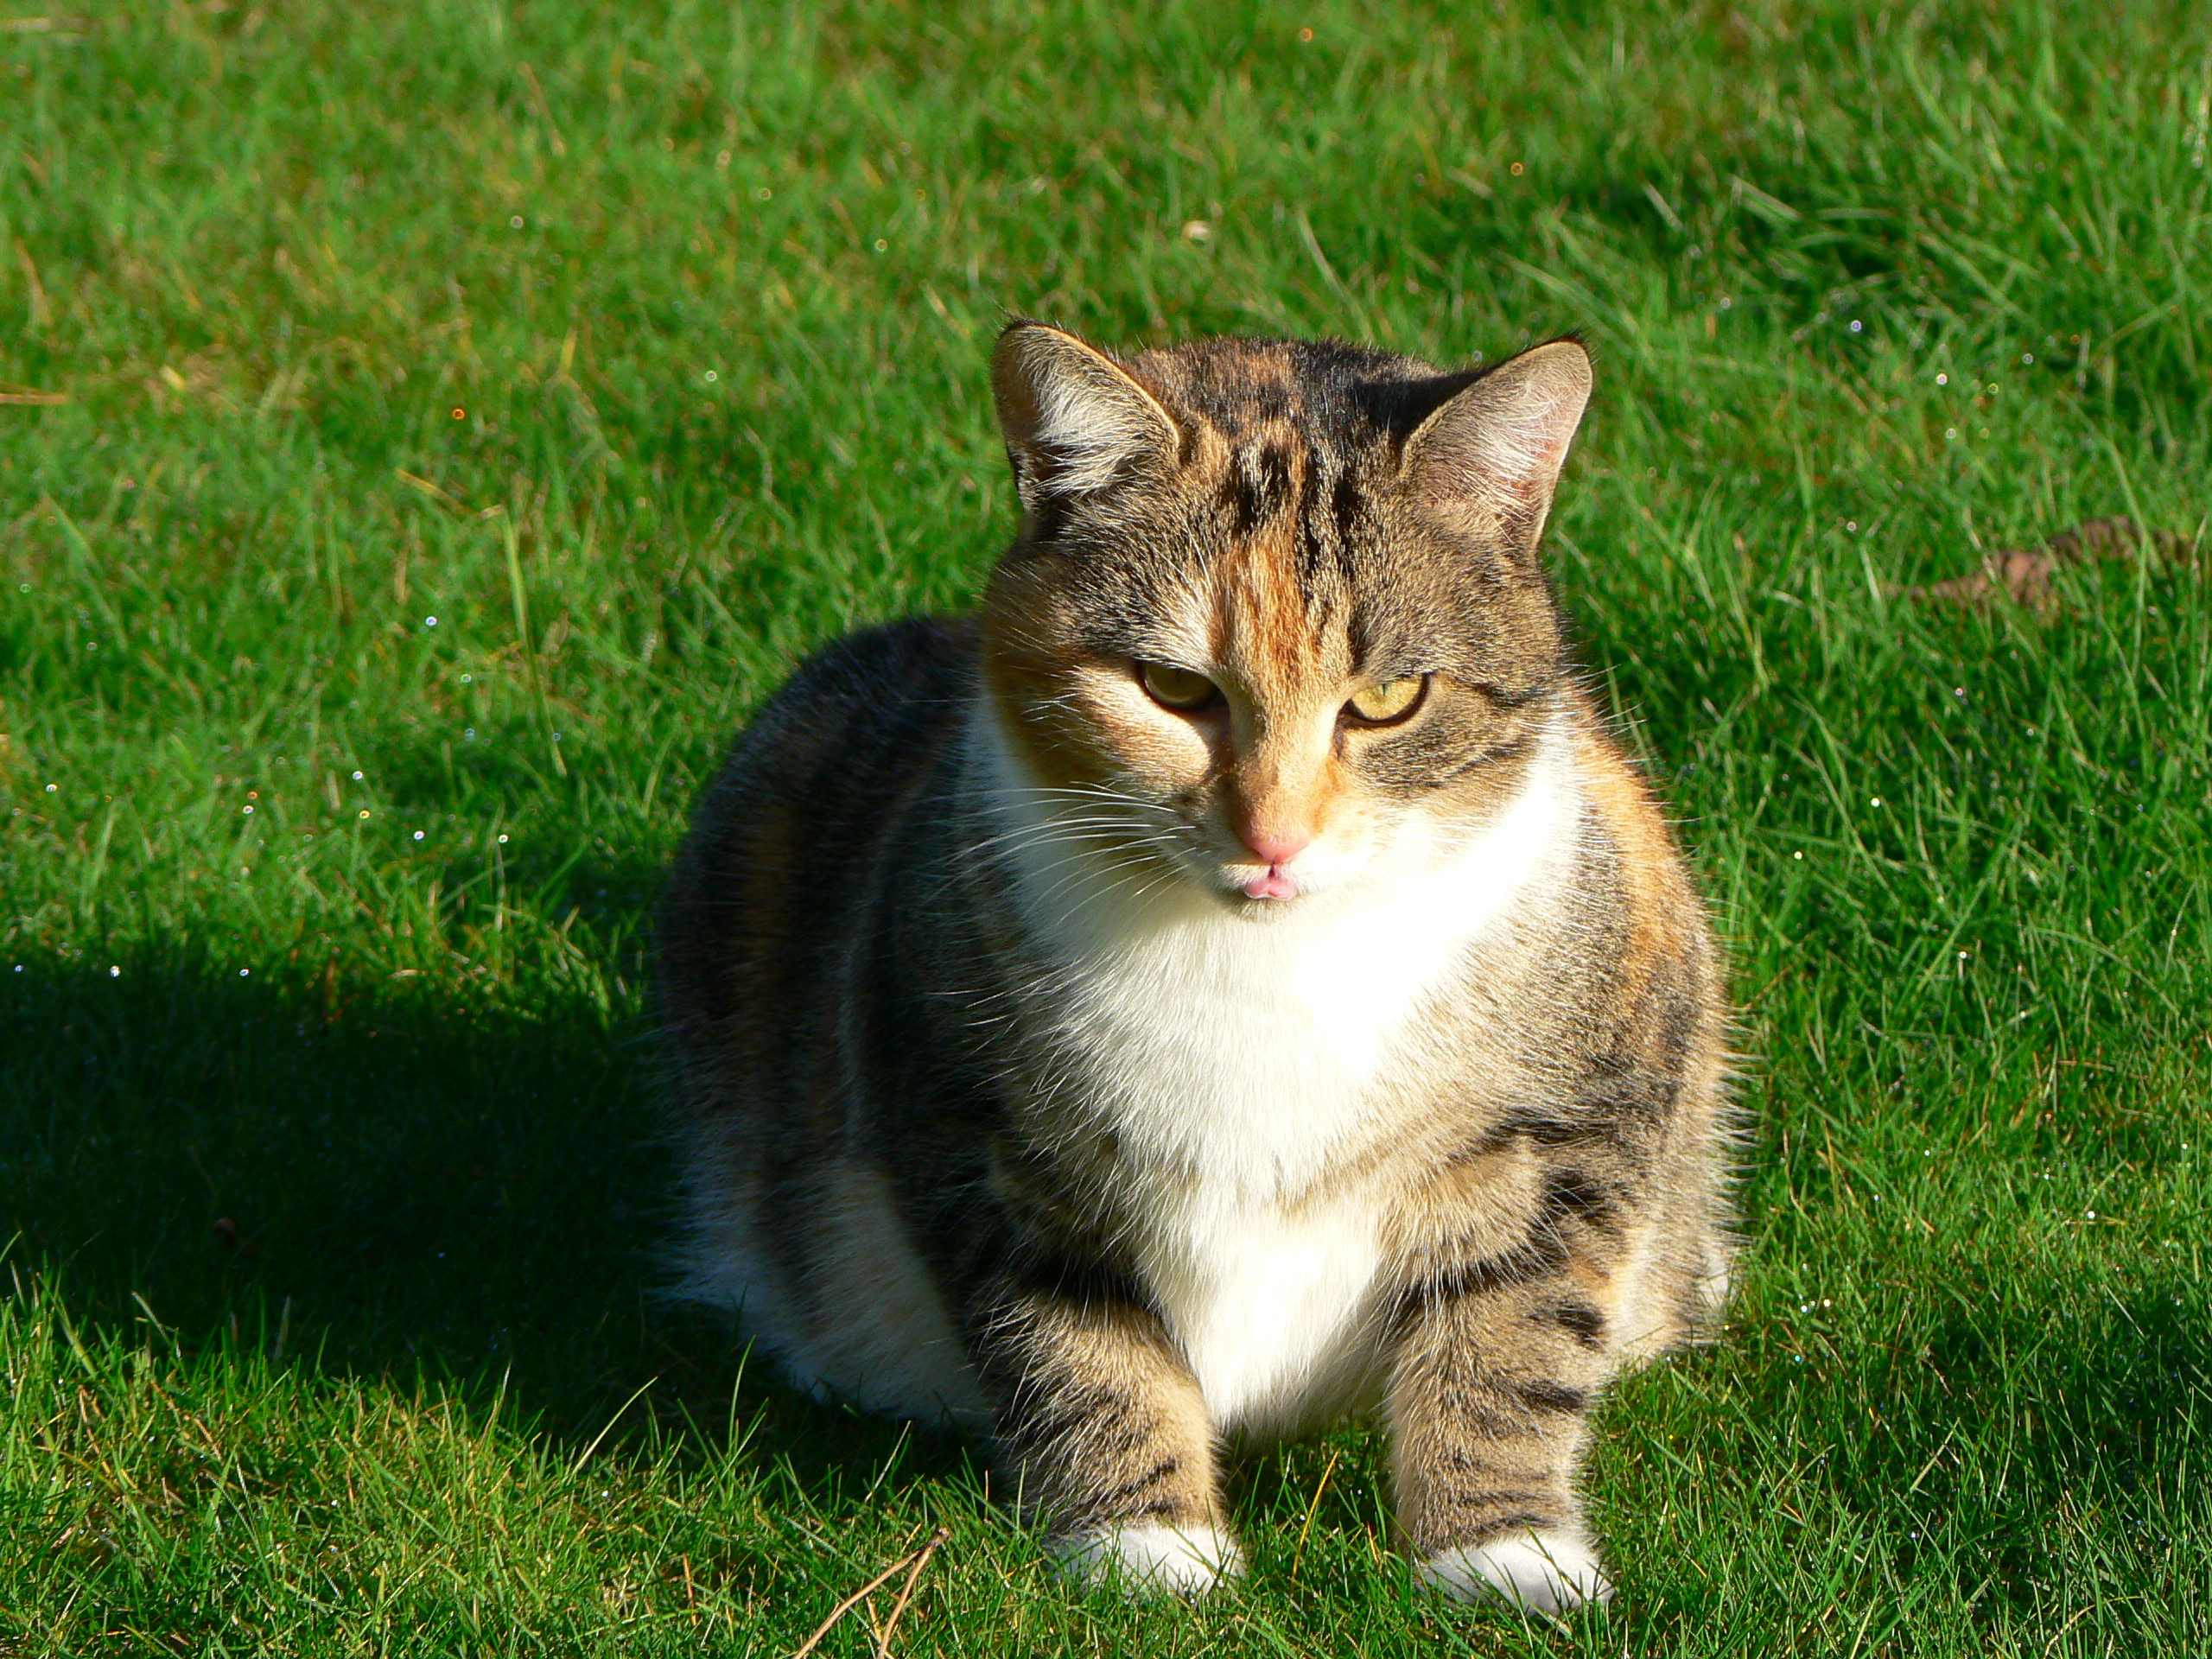 Brown And White Tabby Cat Pictures to Pin on Pinterest ... Tabby Norwegian Forest Cat